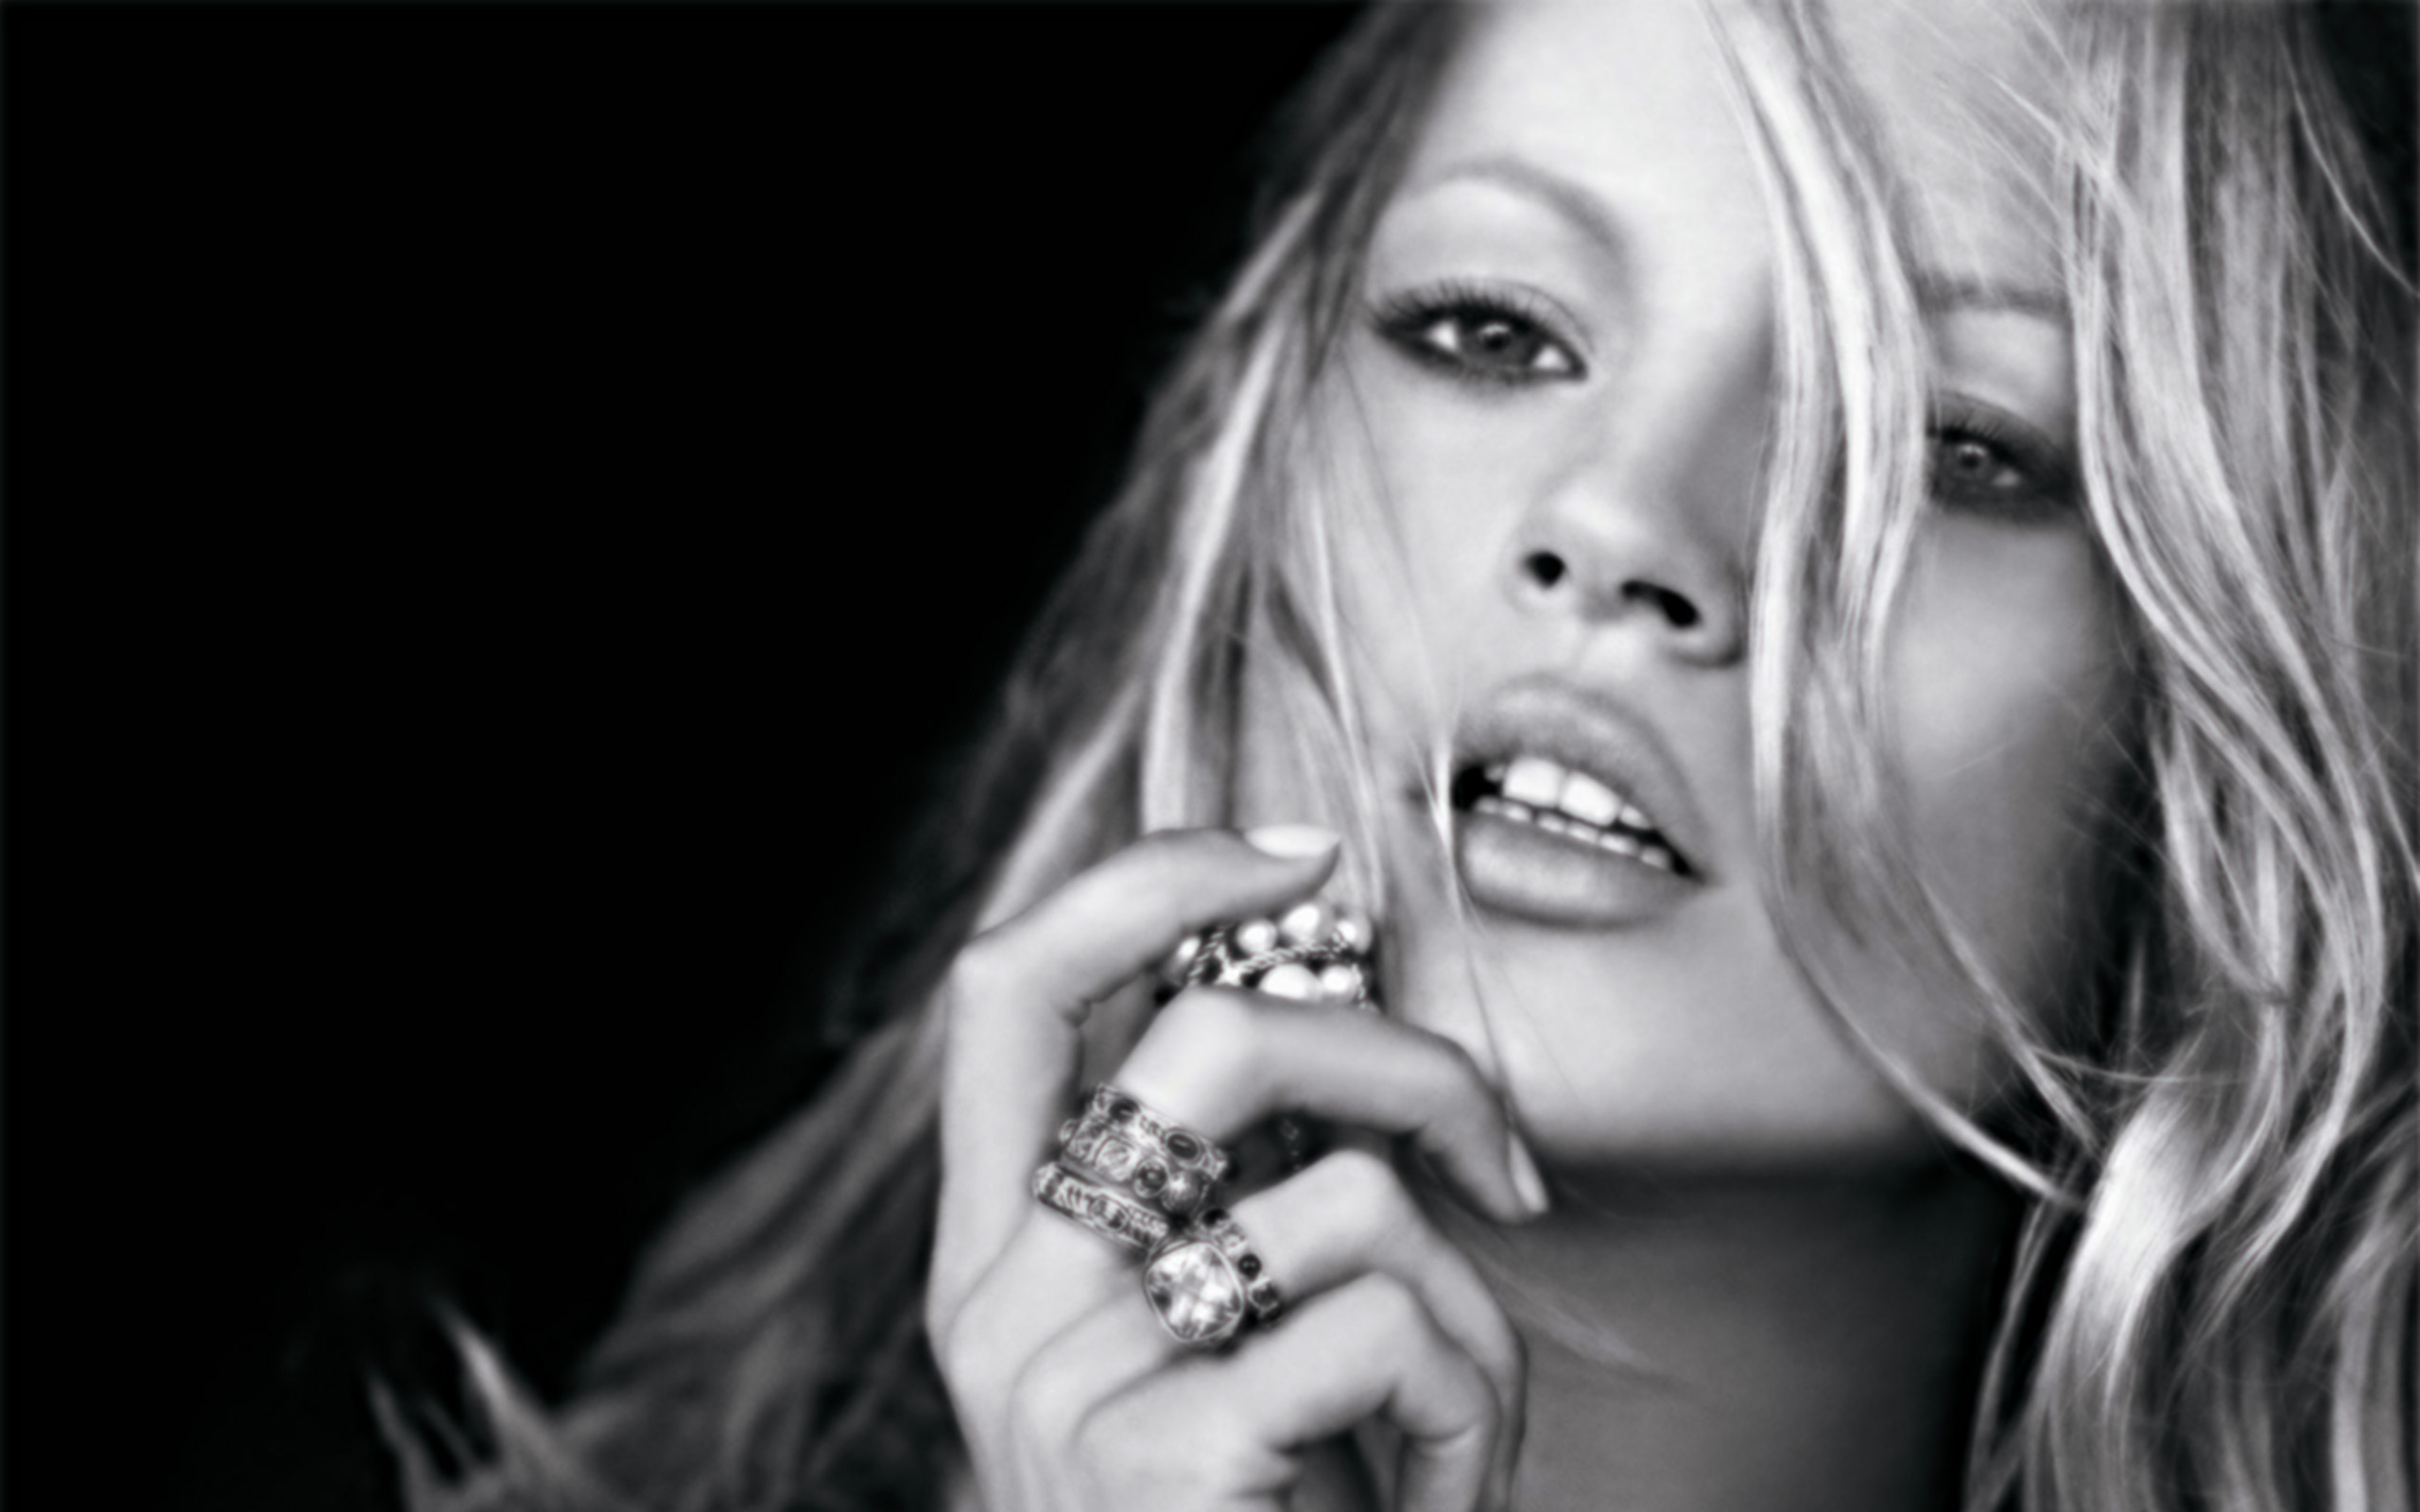 2560x1600 - Kate Moss Wallpapers 11